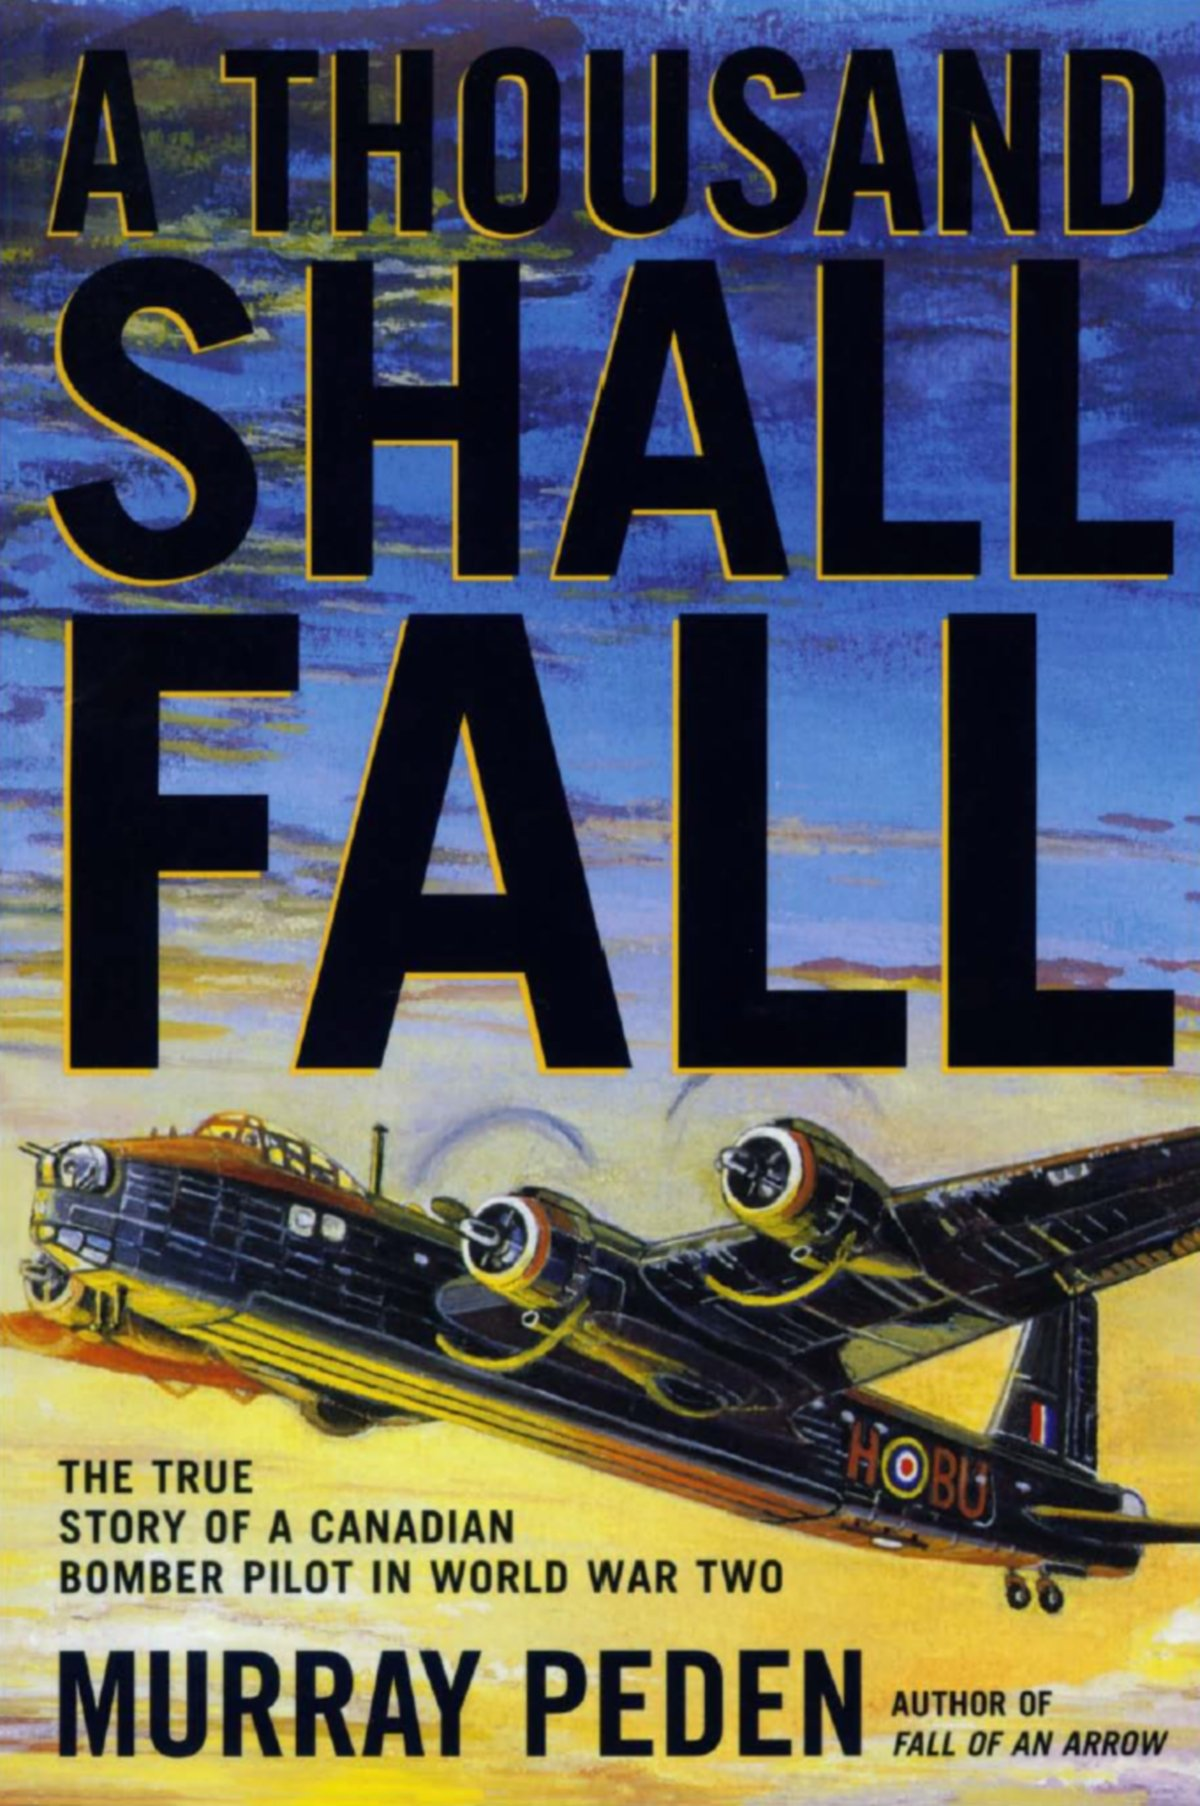 a-thousand-shall-fall-the-true-story-of-a-canadian-bomber-pilot-in-world-war-two